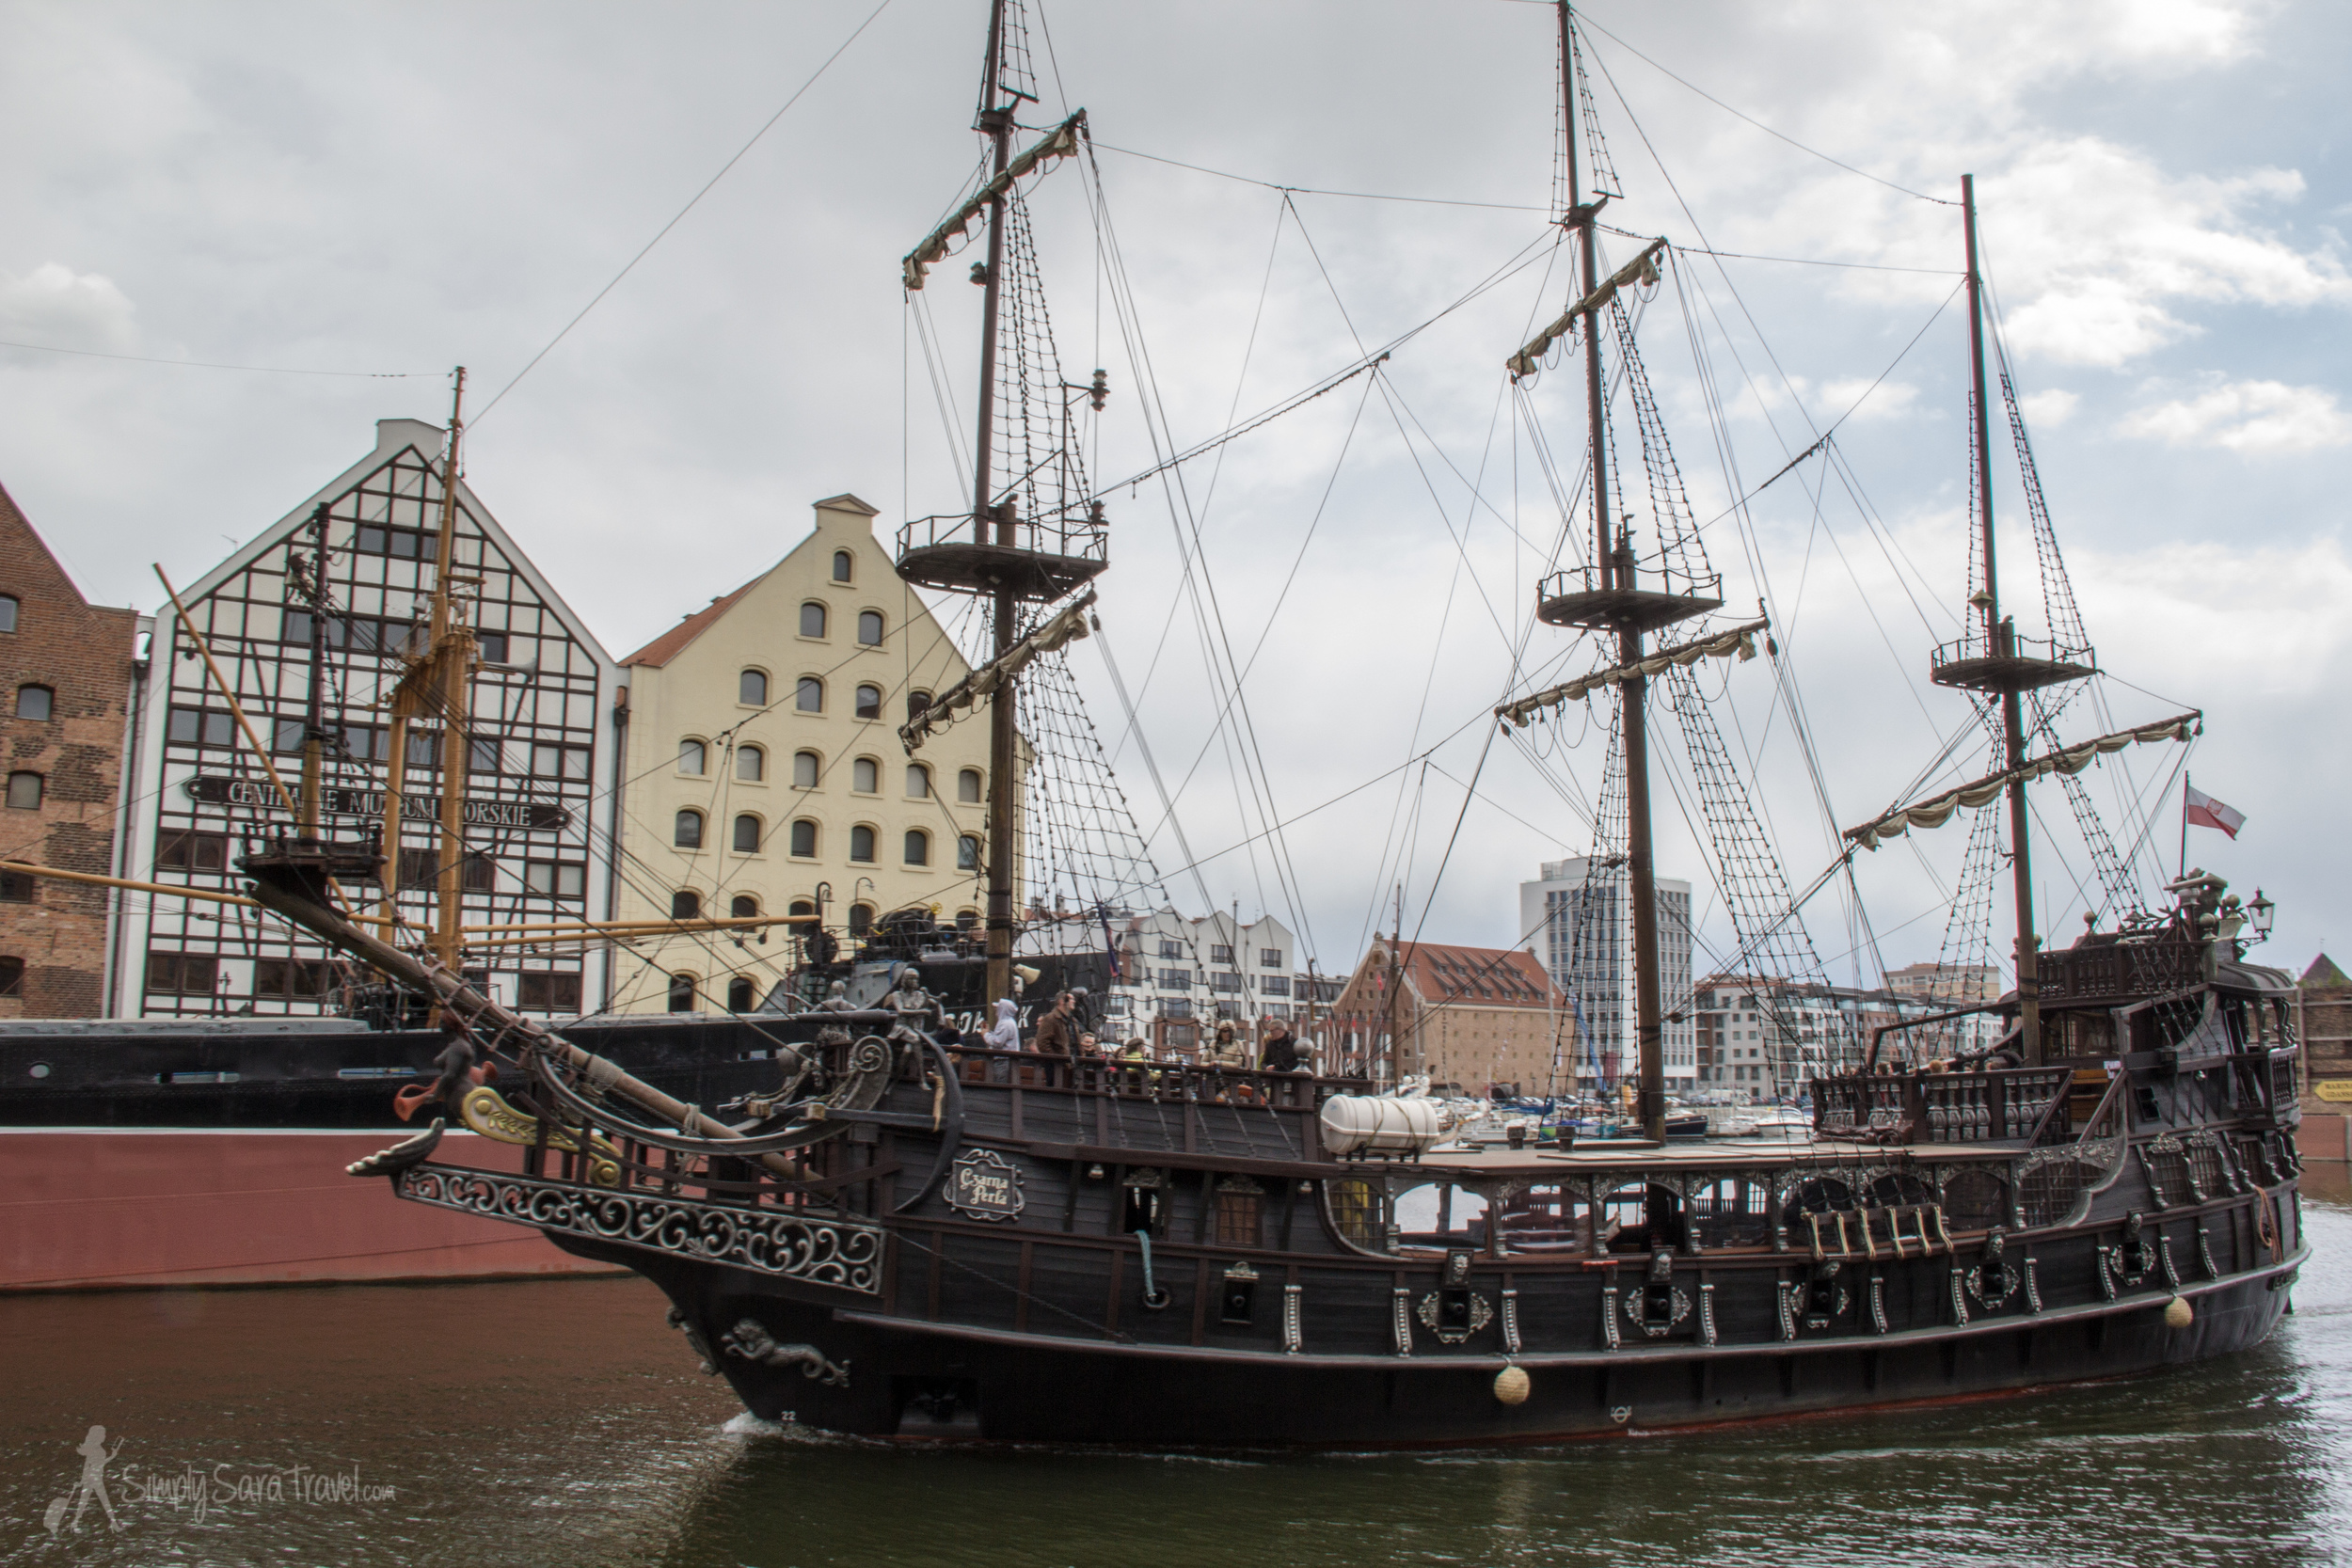 Pirate boat in Gdańsk, Poland